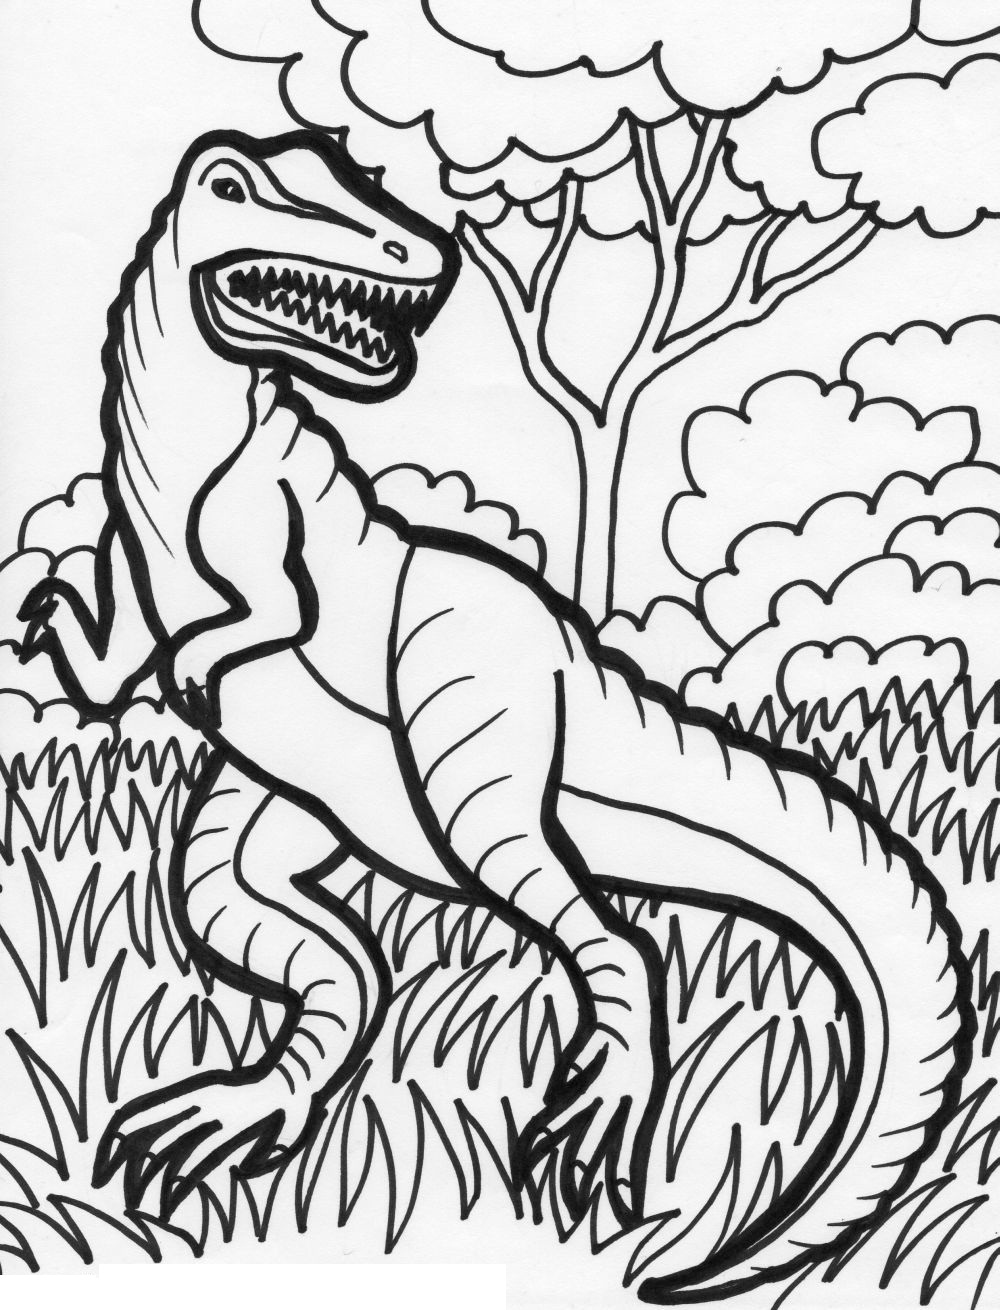 dinossaur coloring pages - photo#32